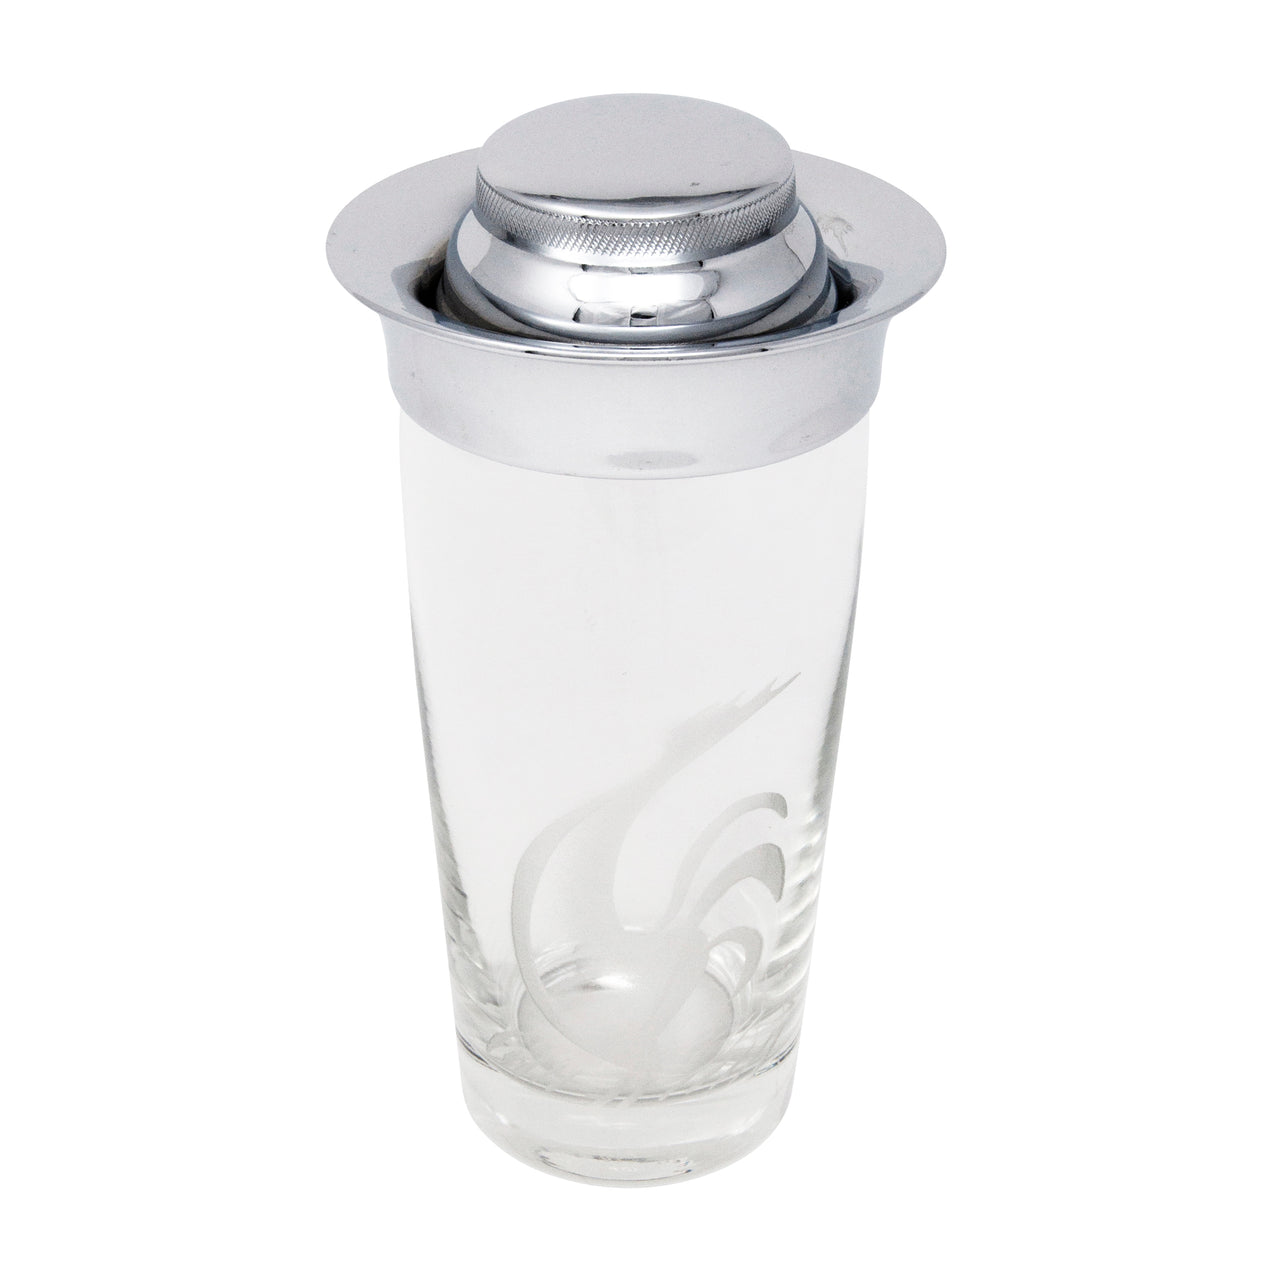 Vintage Frosted Rooster Cocktail Shaker Top | The Hour Shop